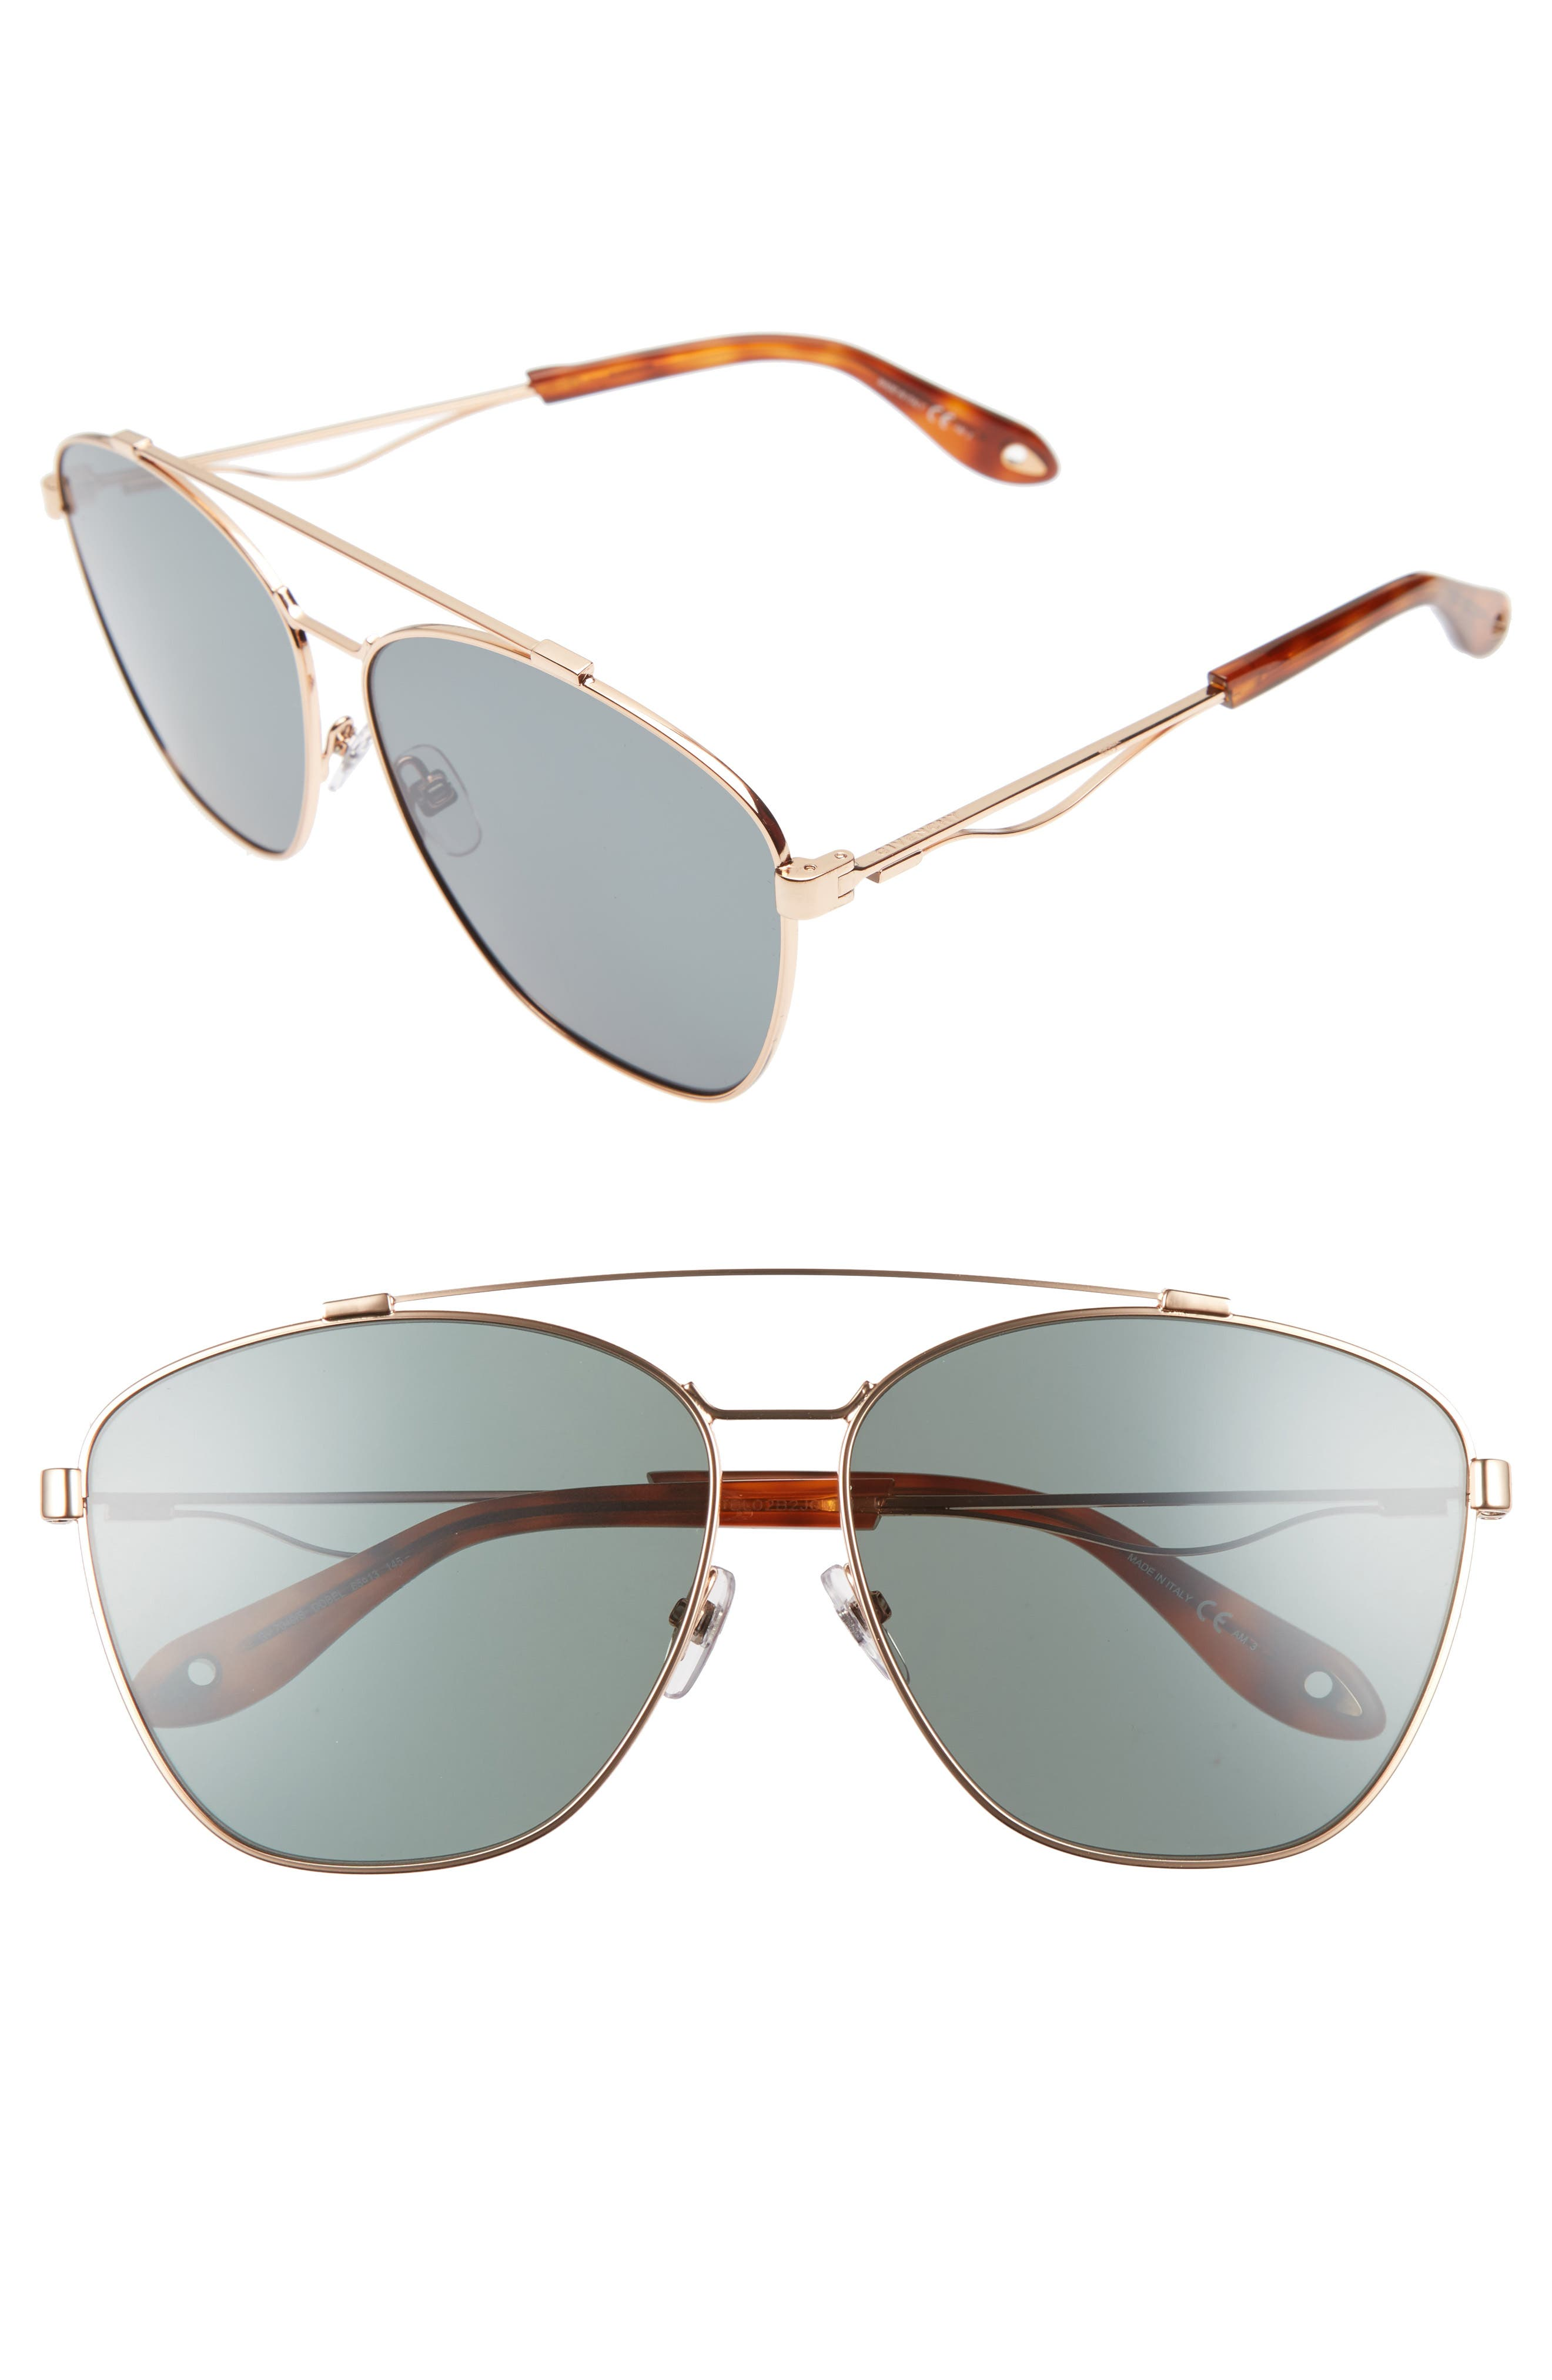 Alternate Image 1 Selected - Givenchy 65mm Round Aviator Sunglasses